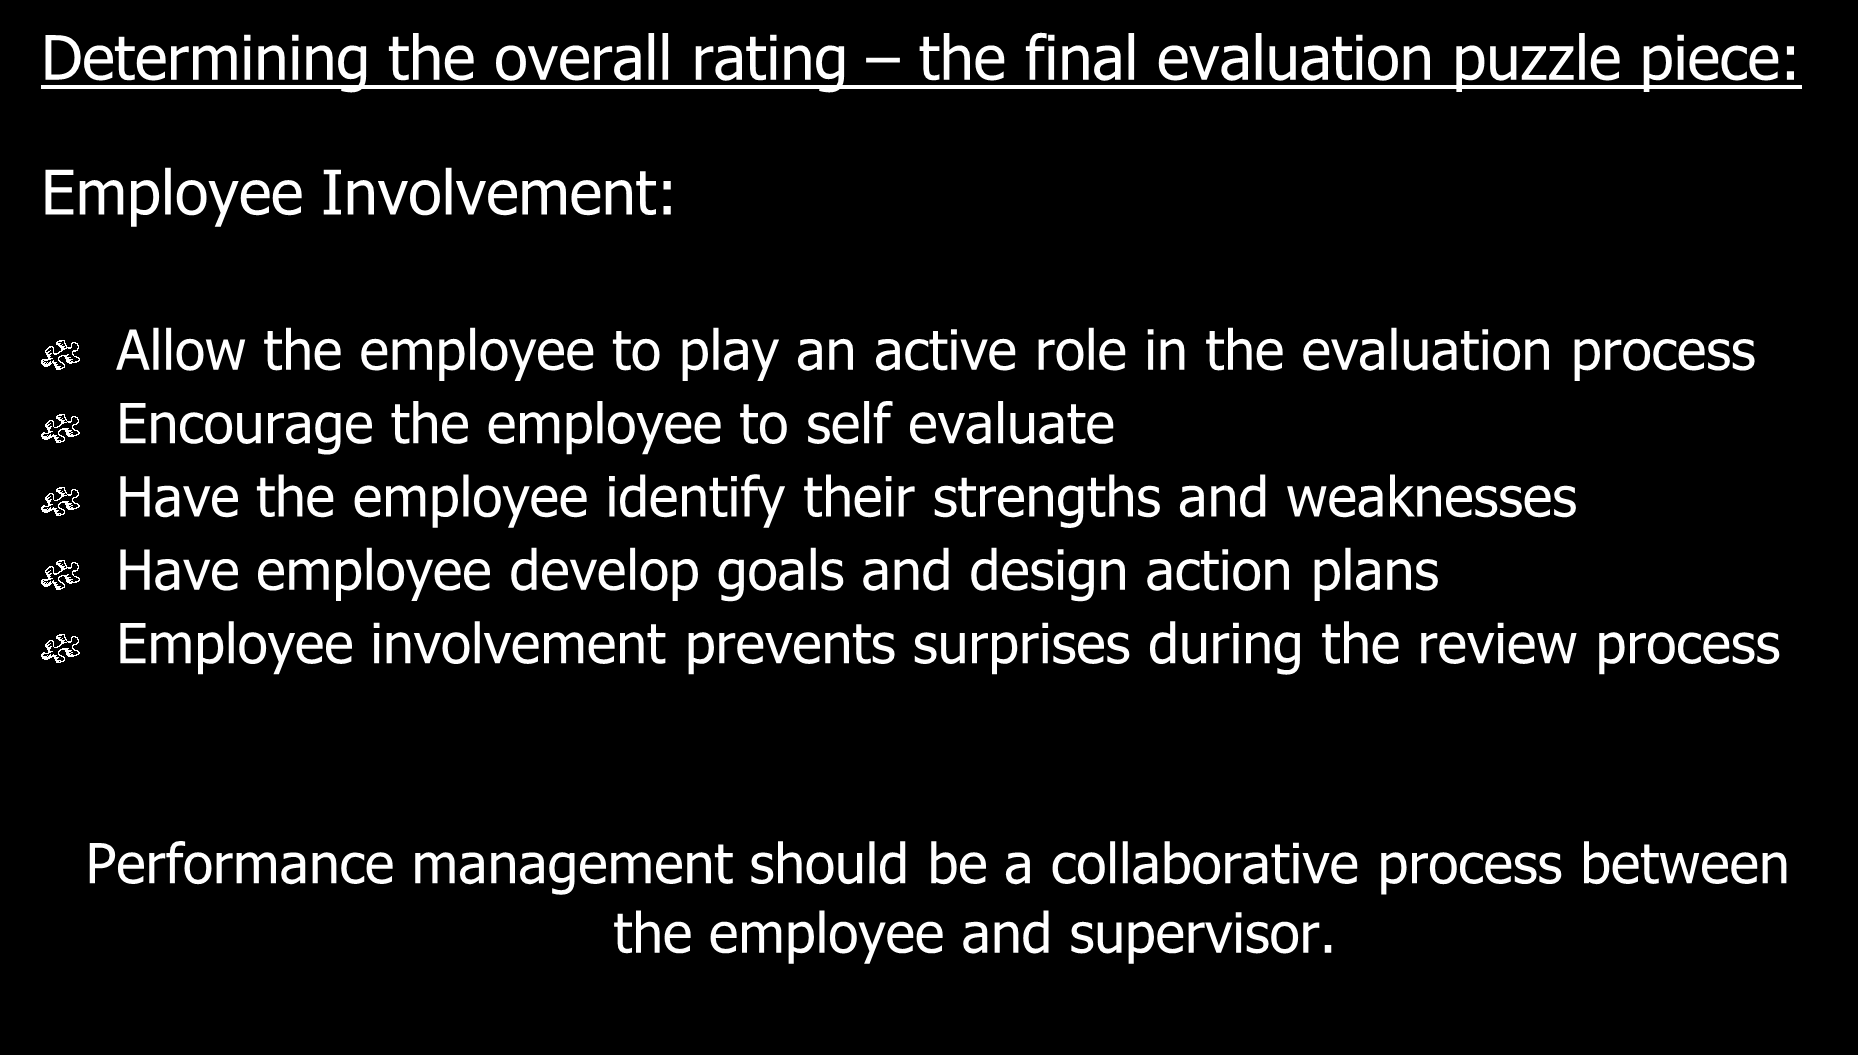 Determining the overall rating the final evaluation puzzle piece: Employee Involvement: Allow the employee to play an active role in the evaluation process Encourage the employee to self evaluate